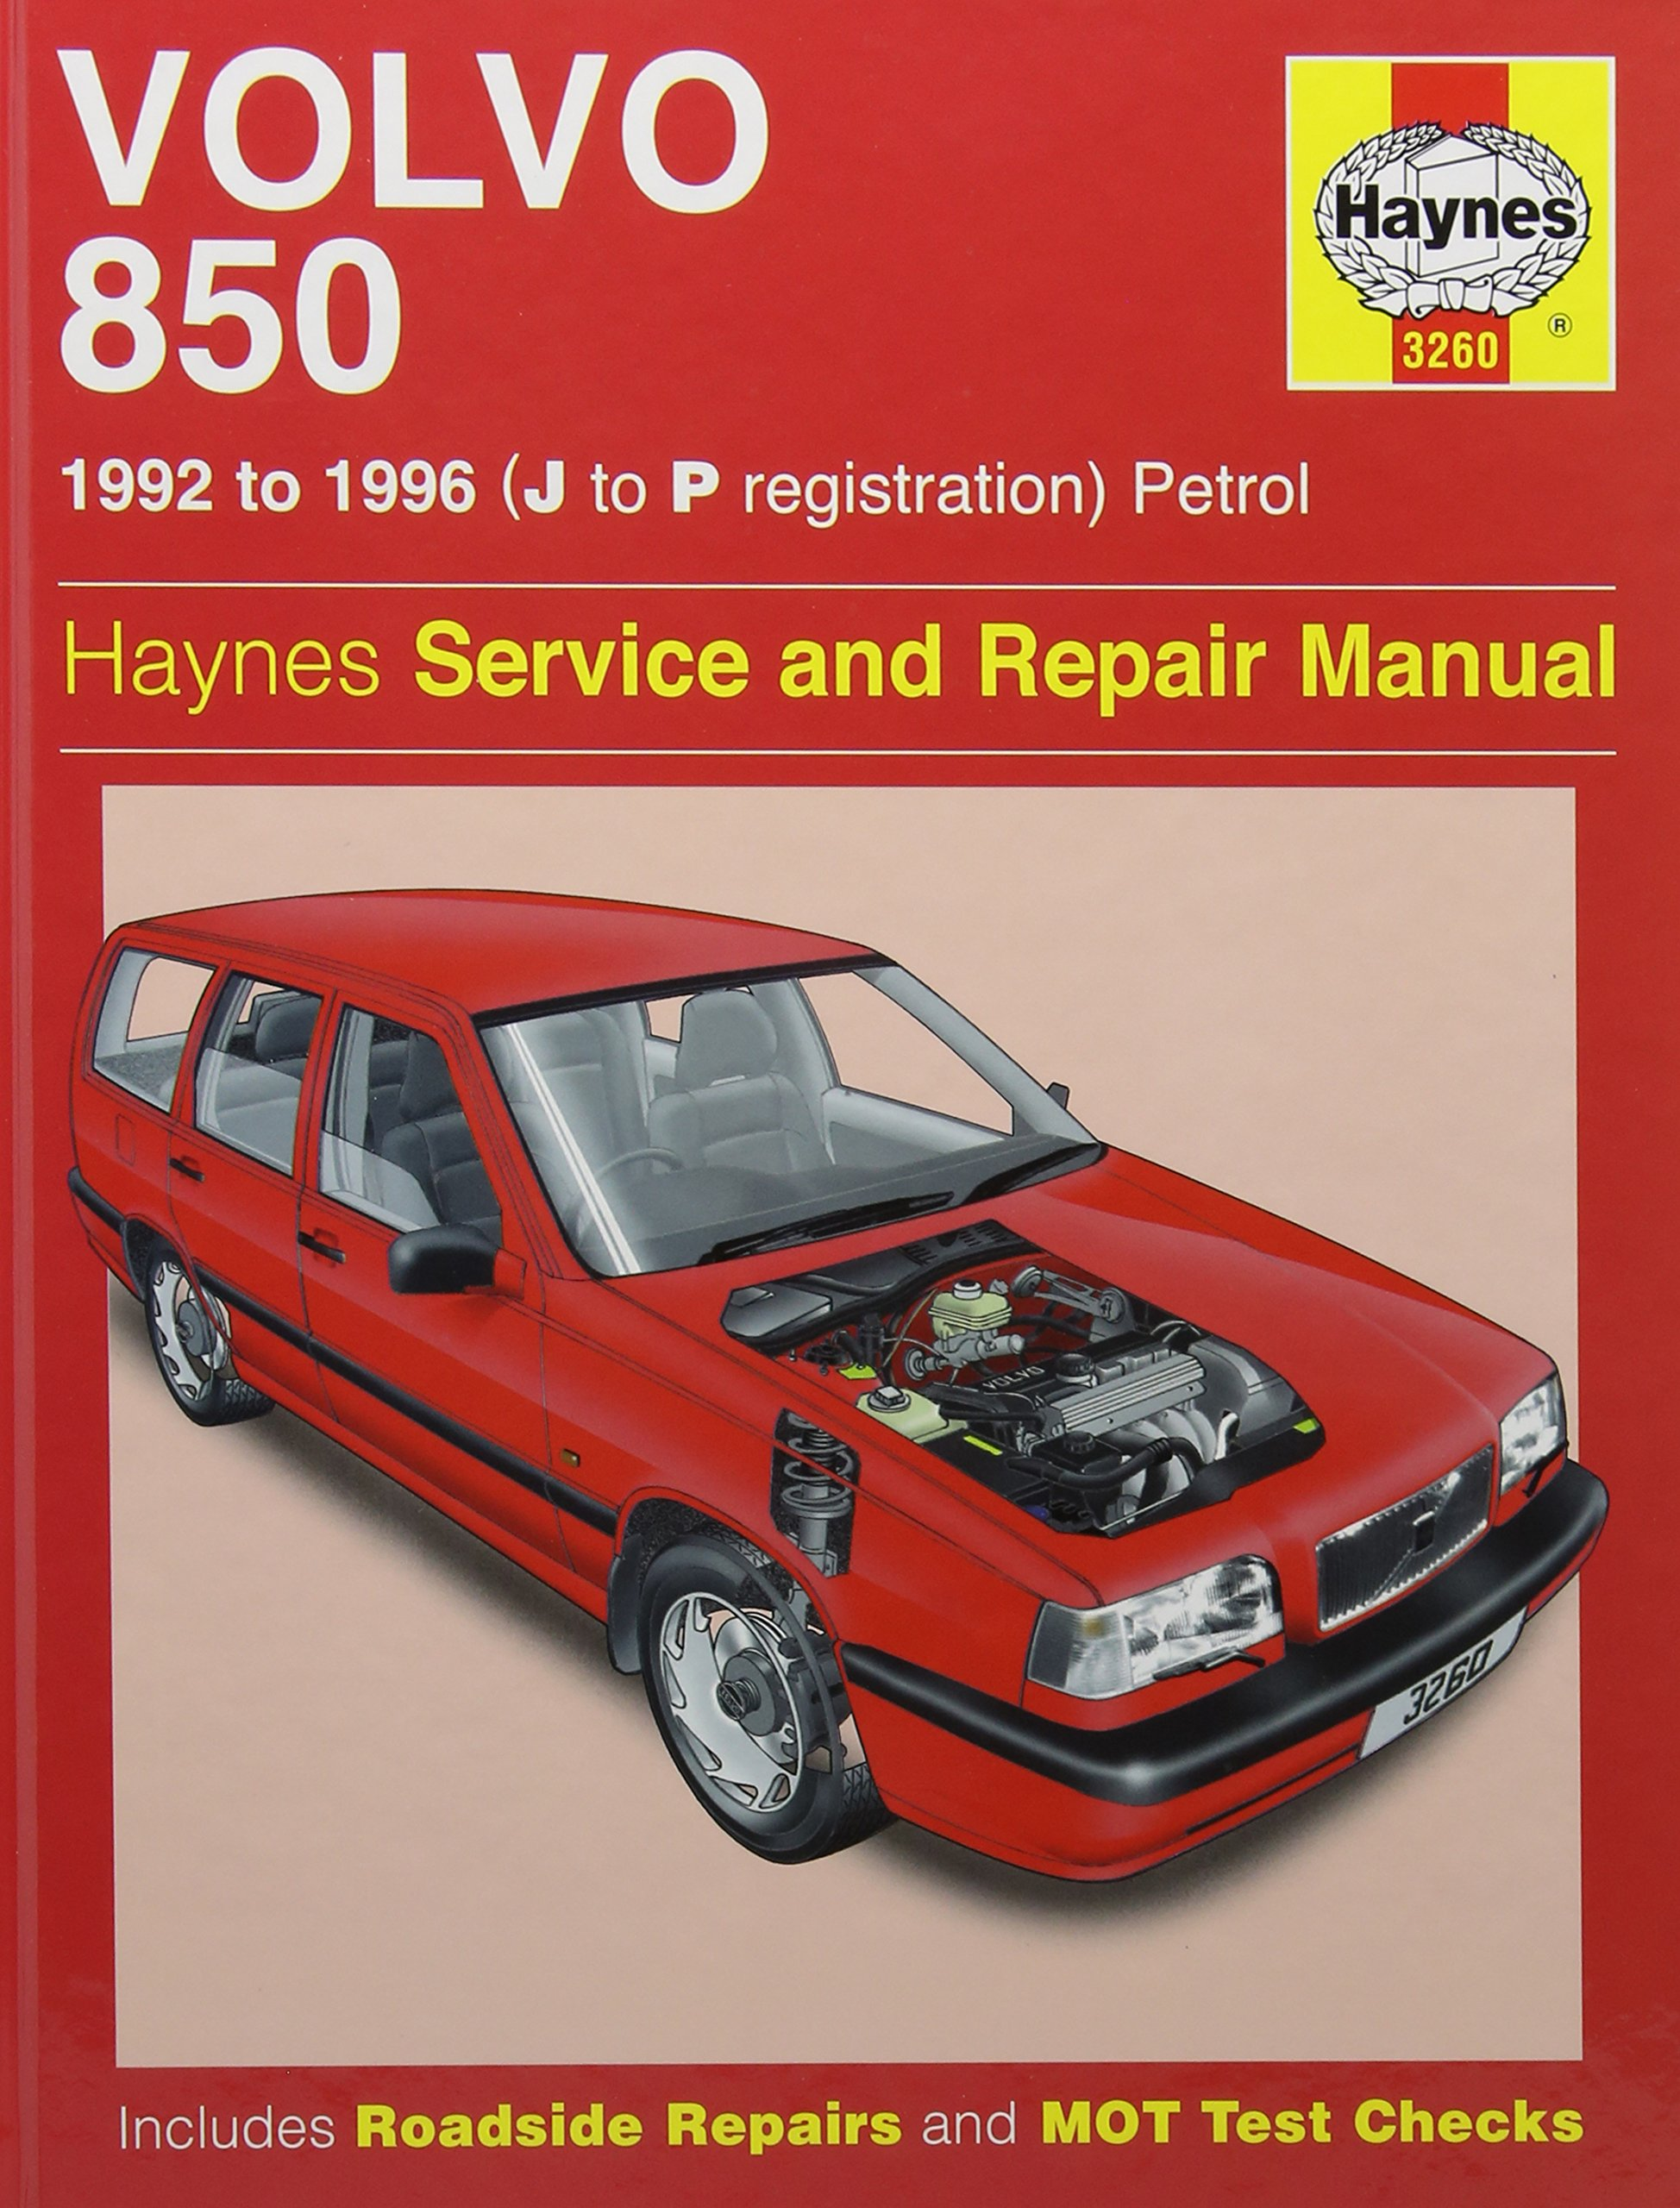 parts mvs publications original volvo manual view suspension technical repair spare exploded dvd